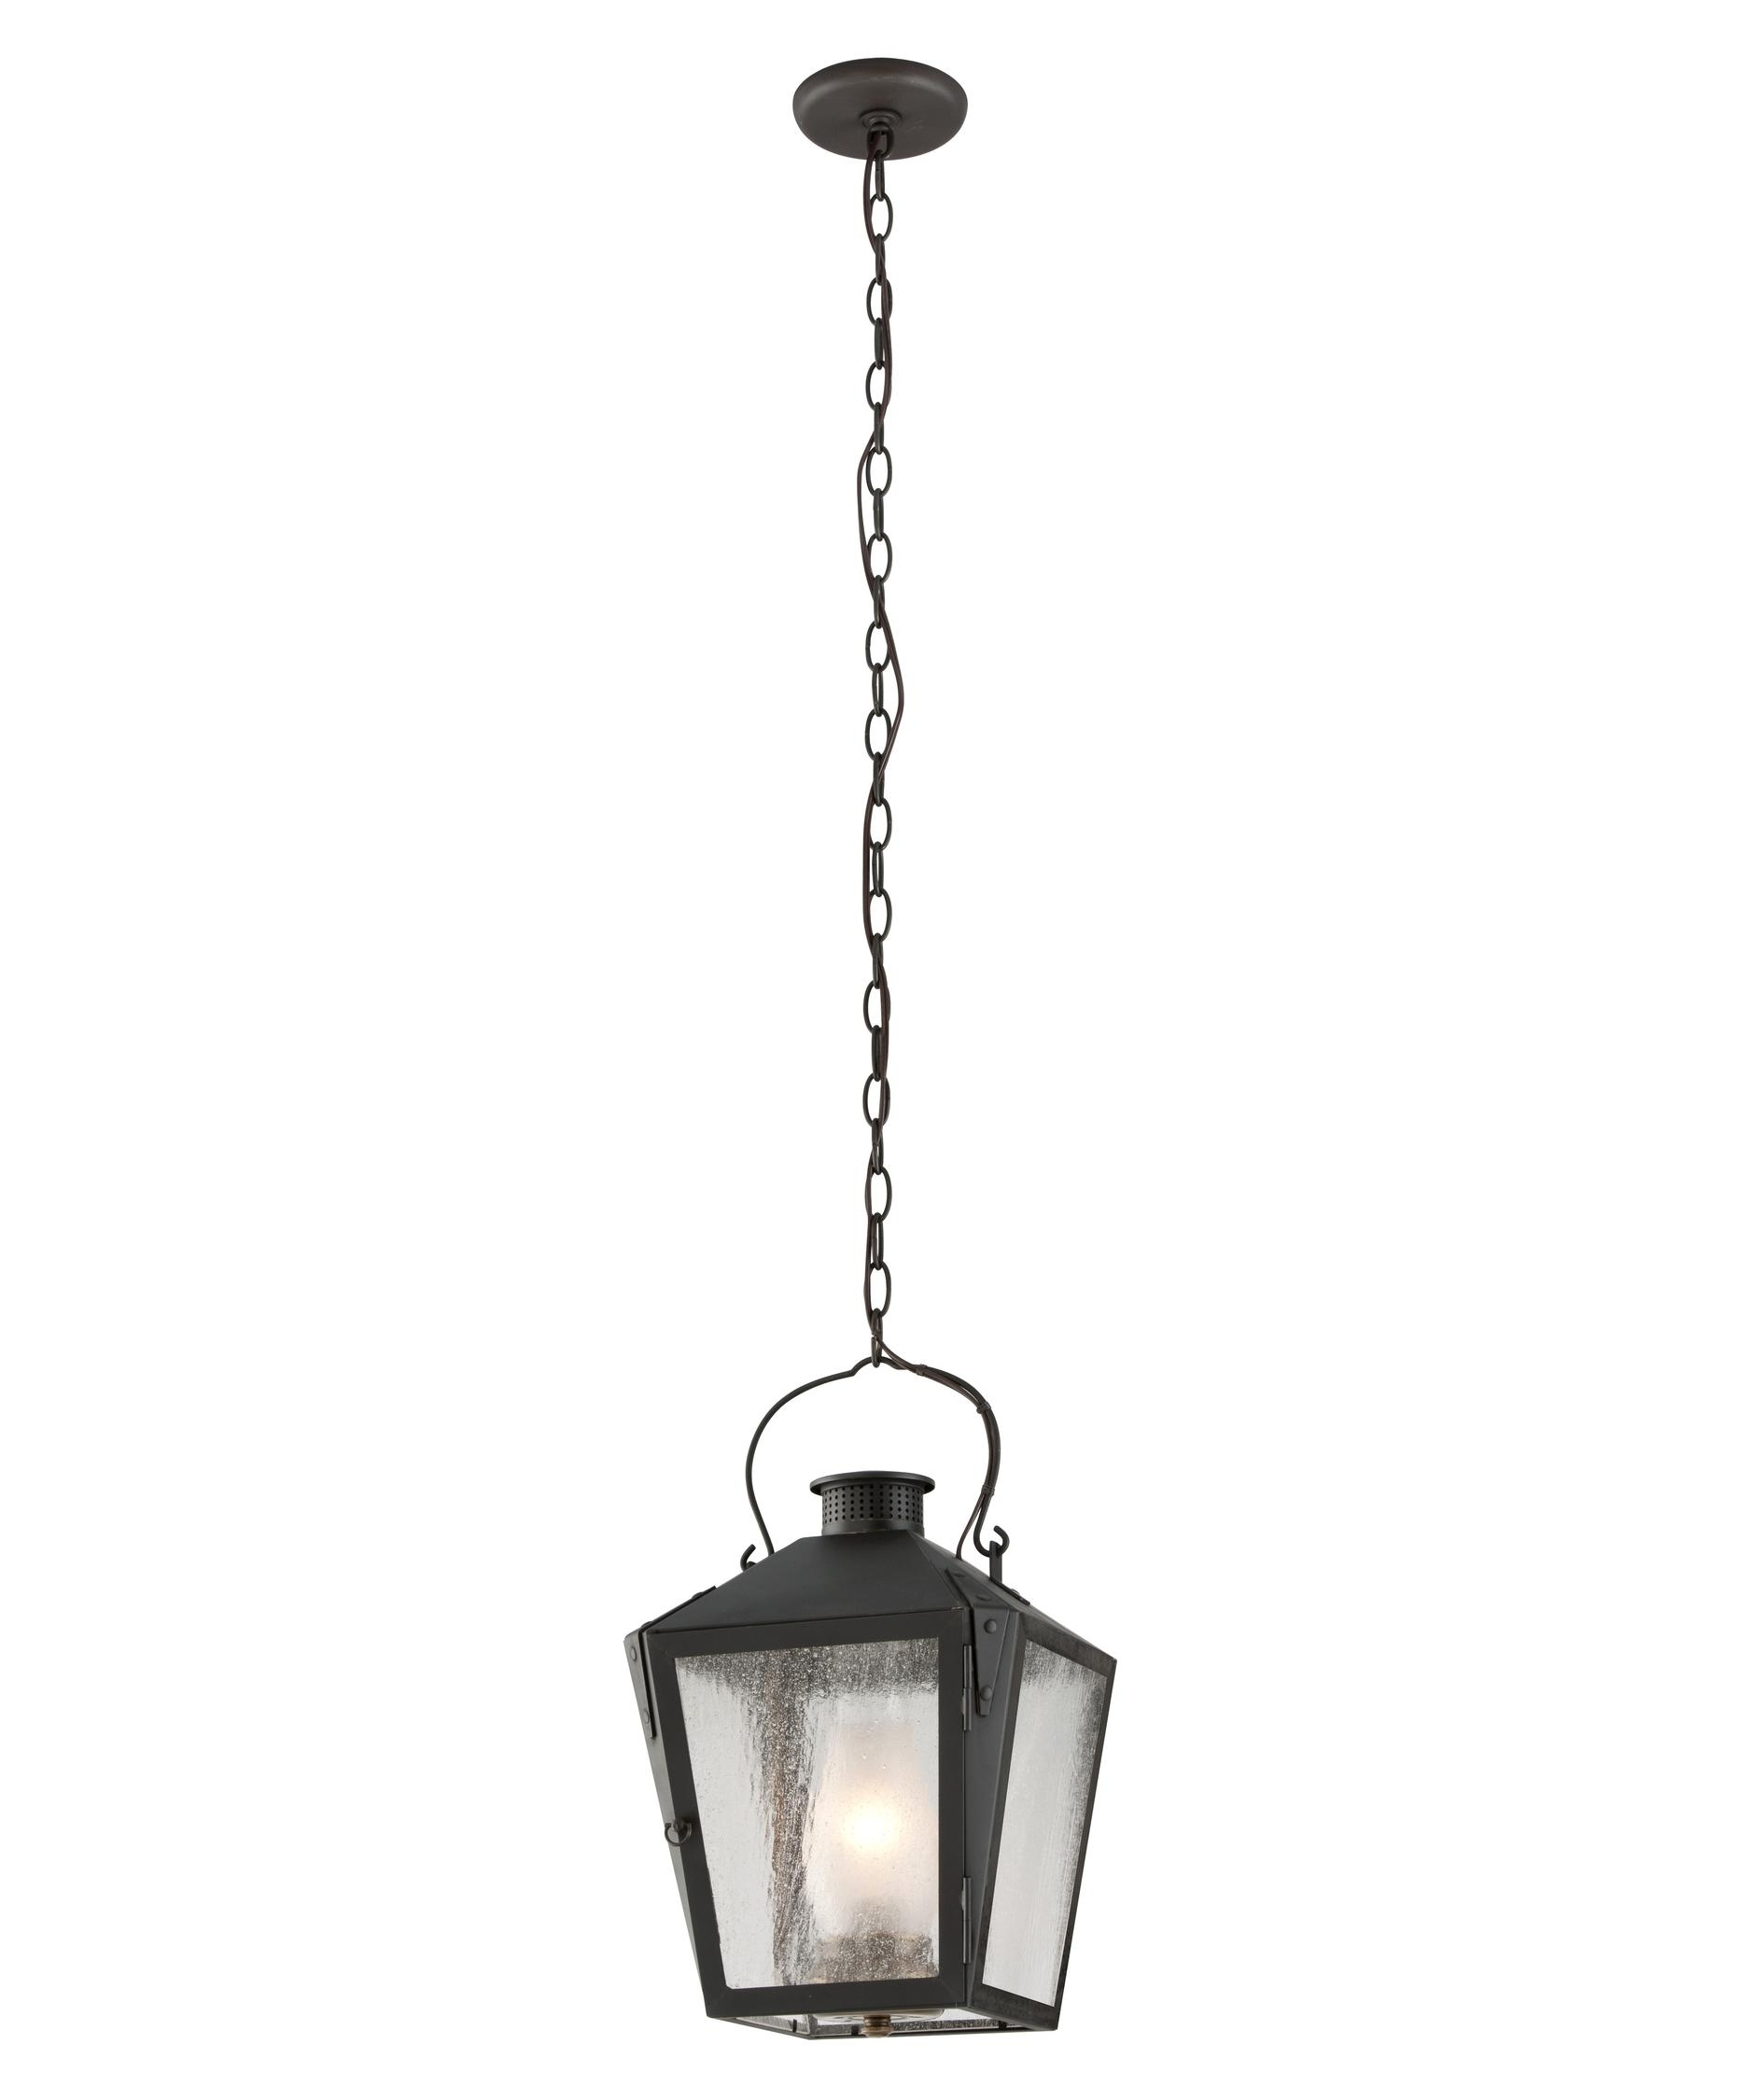 Nantucket Outdoor Lanterns Within Favorite Troy Lighting F3766 Nantucket 11 Inch Wide 1 Light Outdoor Hanging (View 16 of 20)